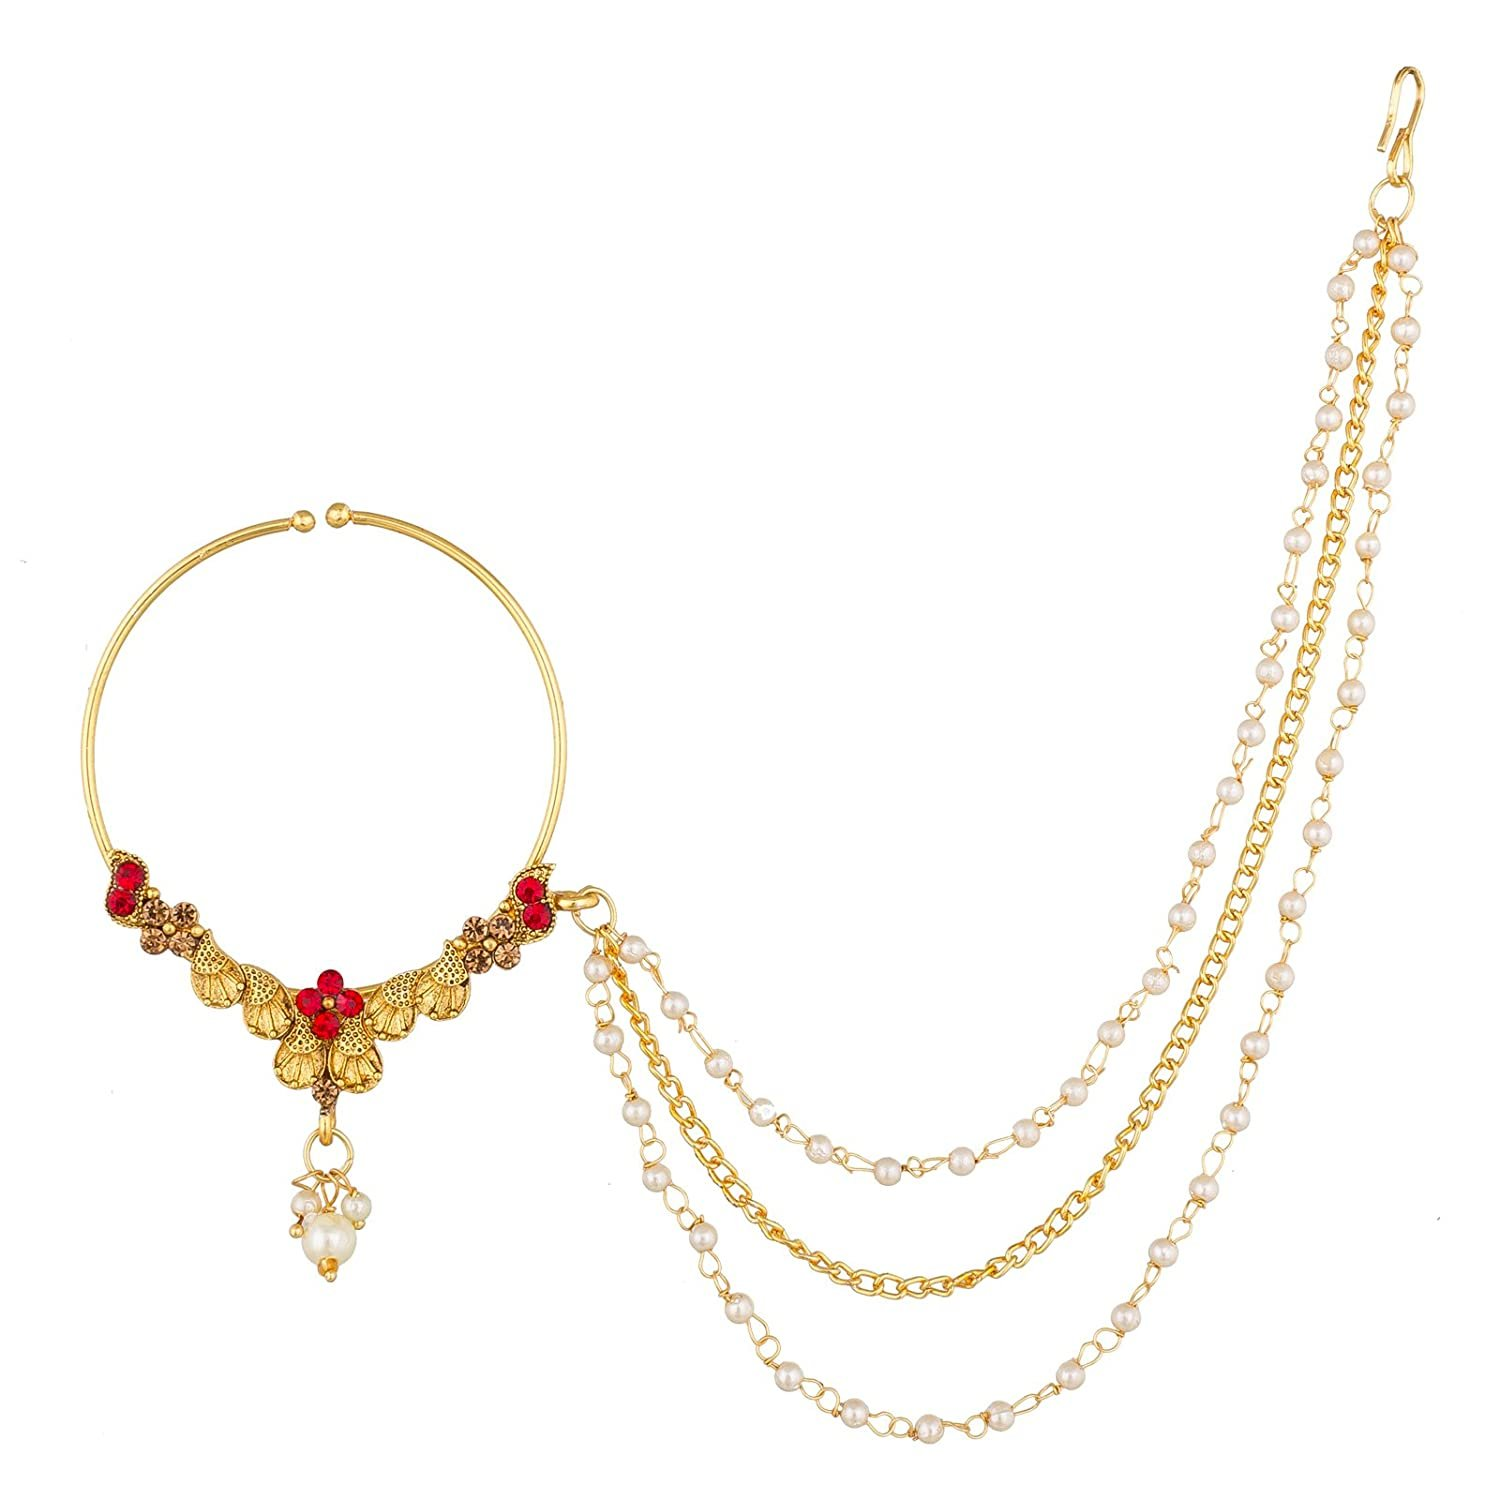 The Luxor Fashion Jewellery Traditional Gold Plated Bridal